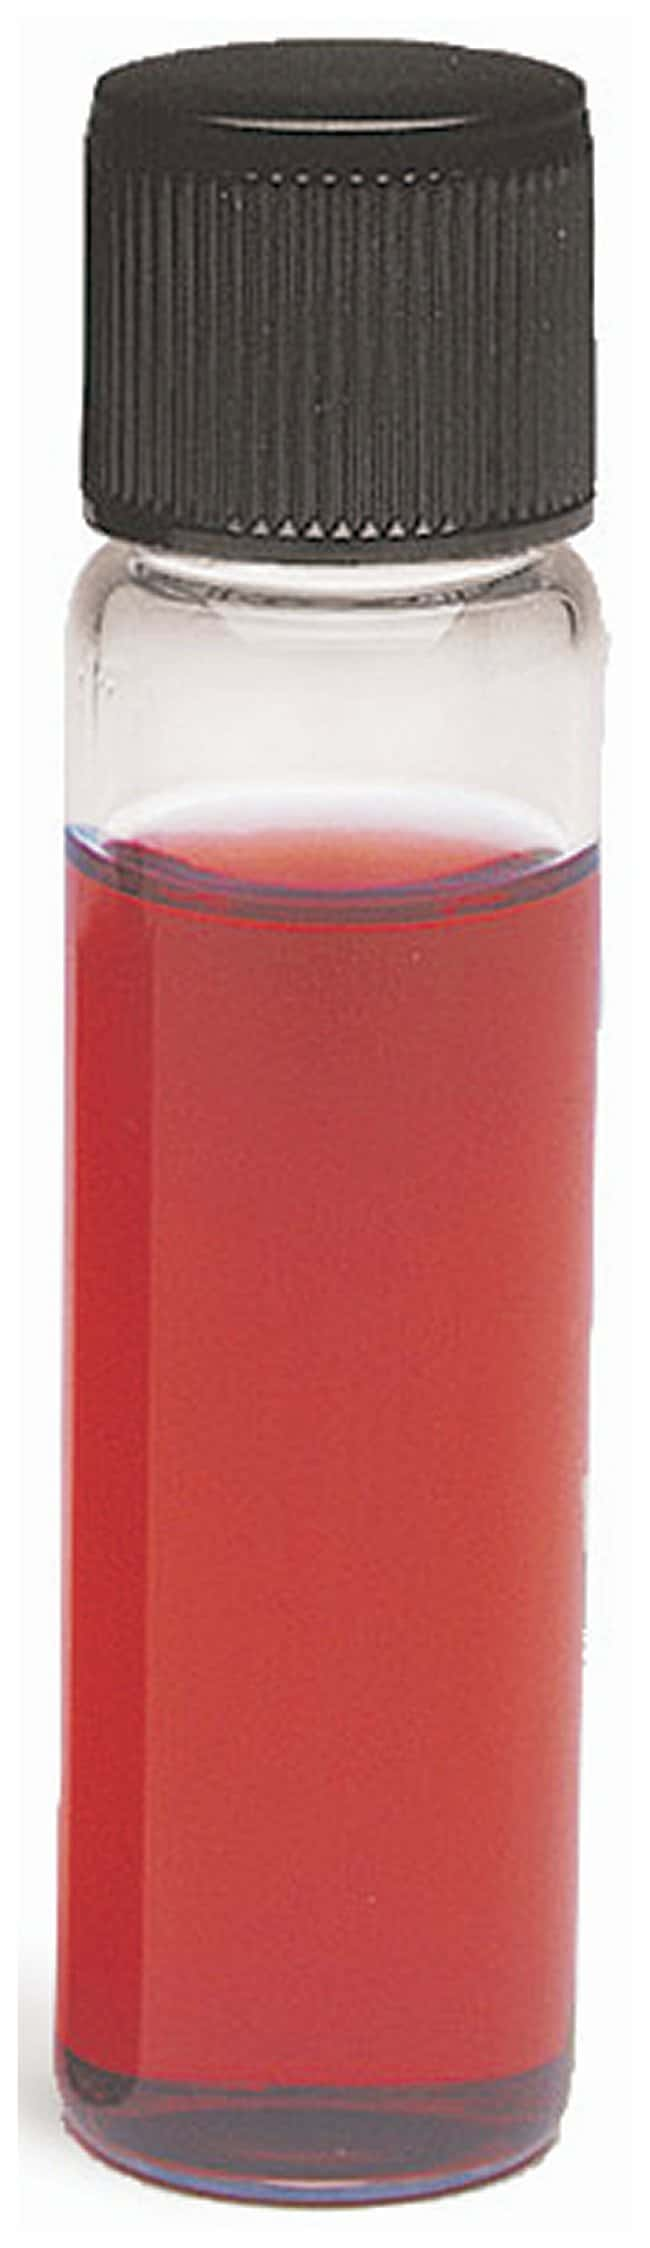 DWK Life Sciences Wheaton Glass Culture Vials Culture Vials, Capacity: